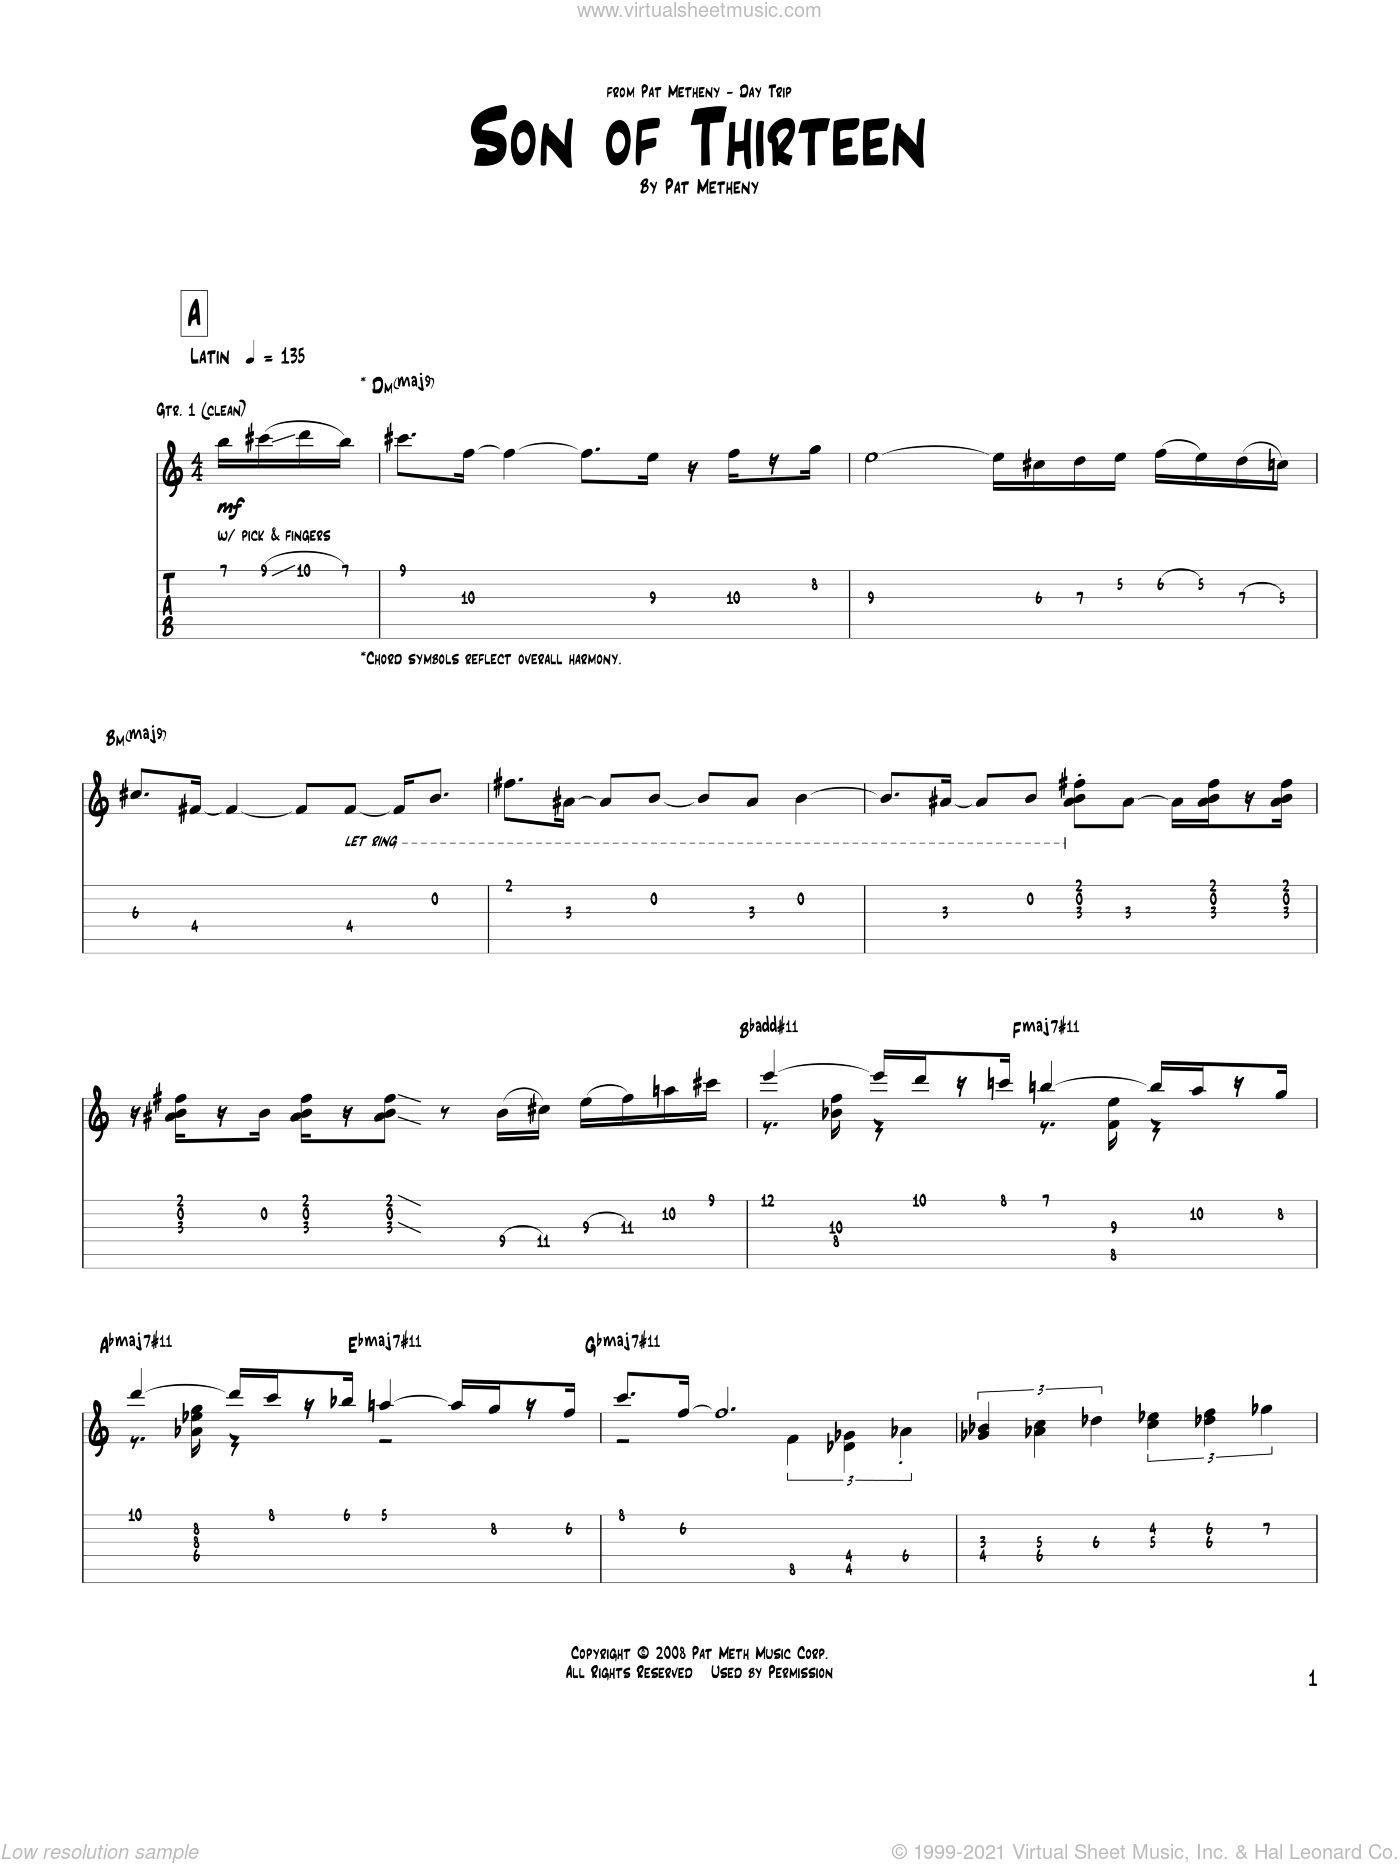 Son Of Thirteen sheet music for guitar (tablature) by Pat Metheny, intermediate skill level